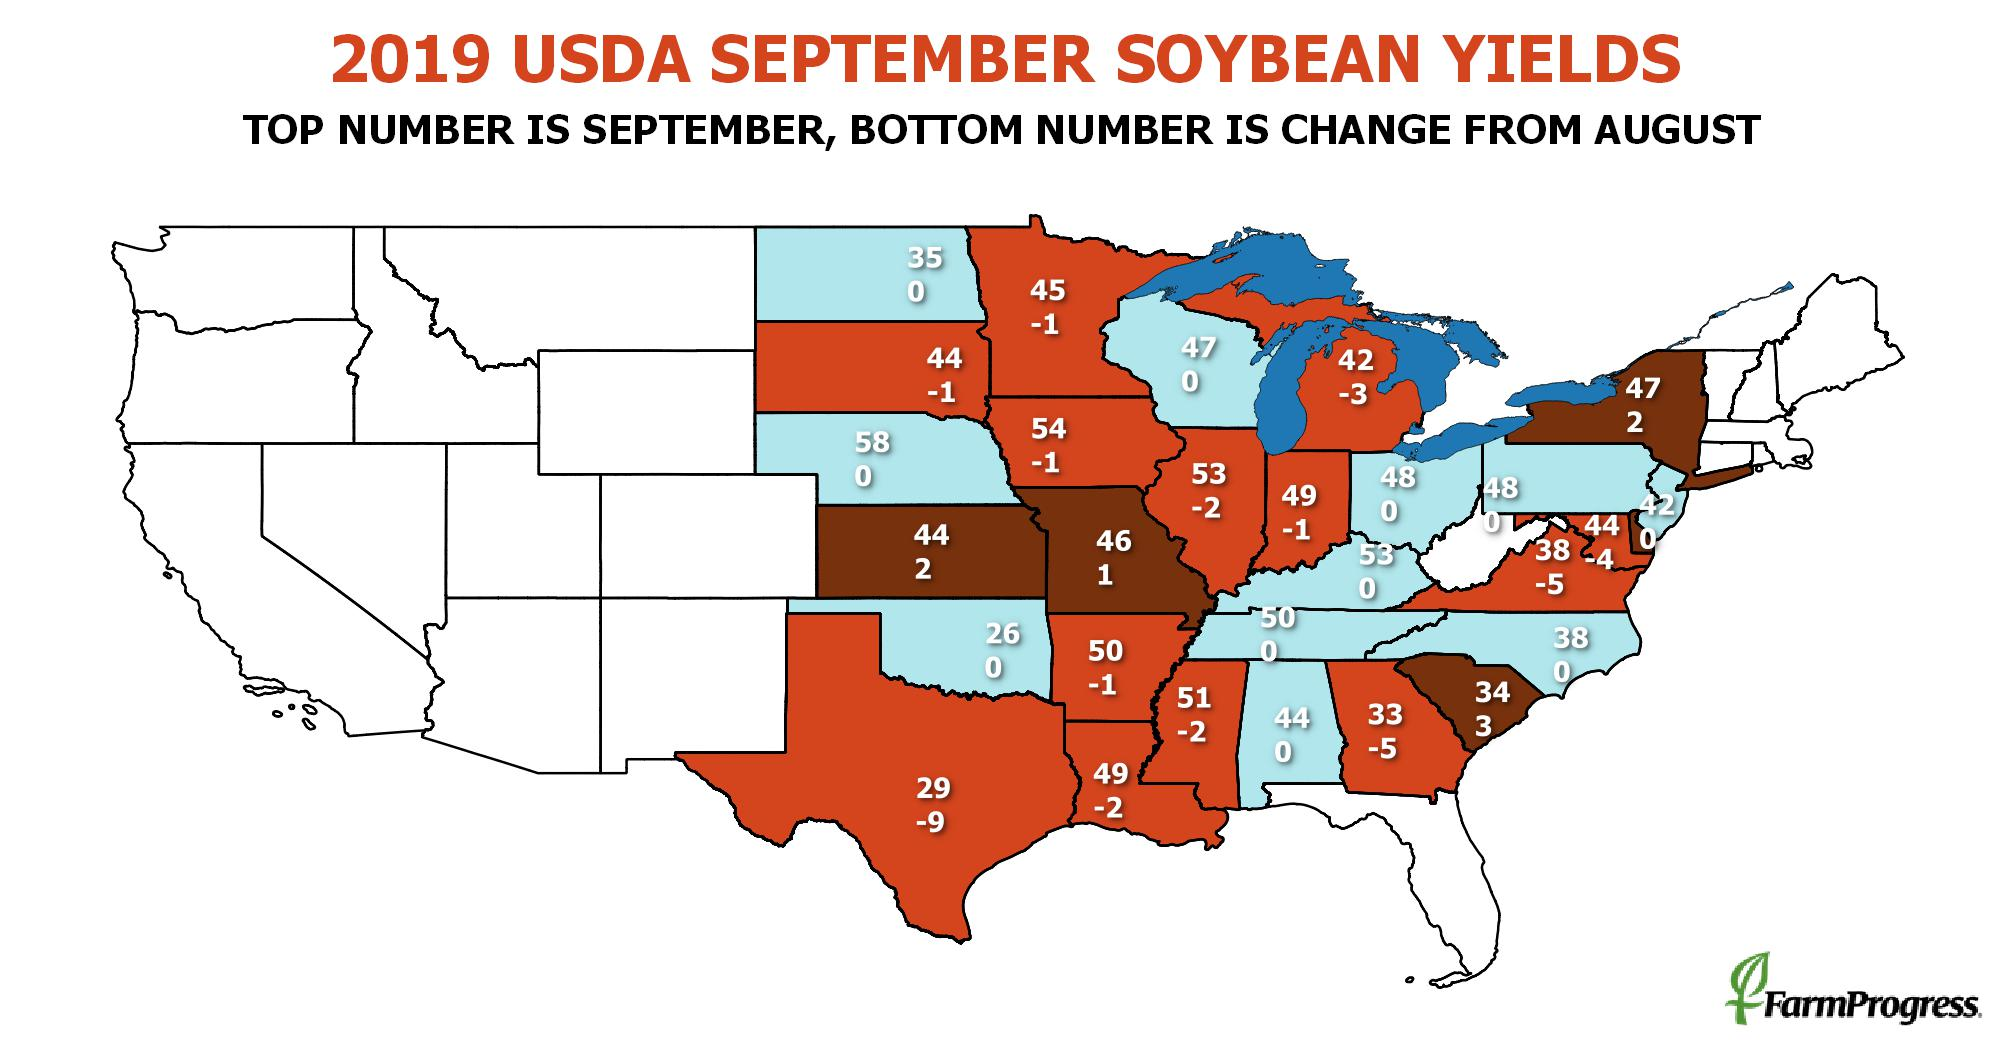 Soybean Production Yields091219.jpeg